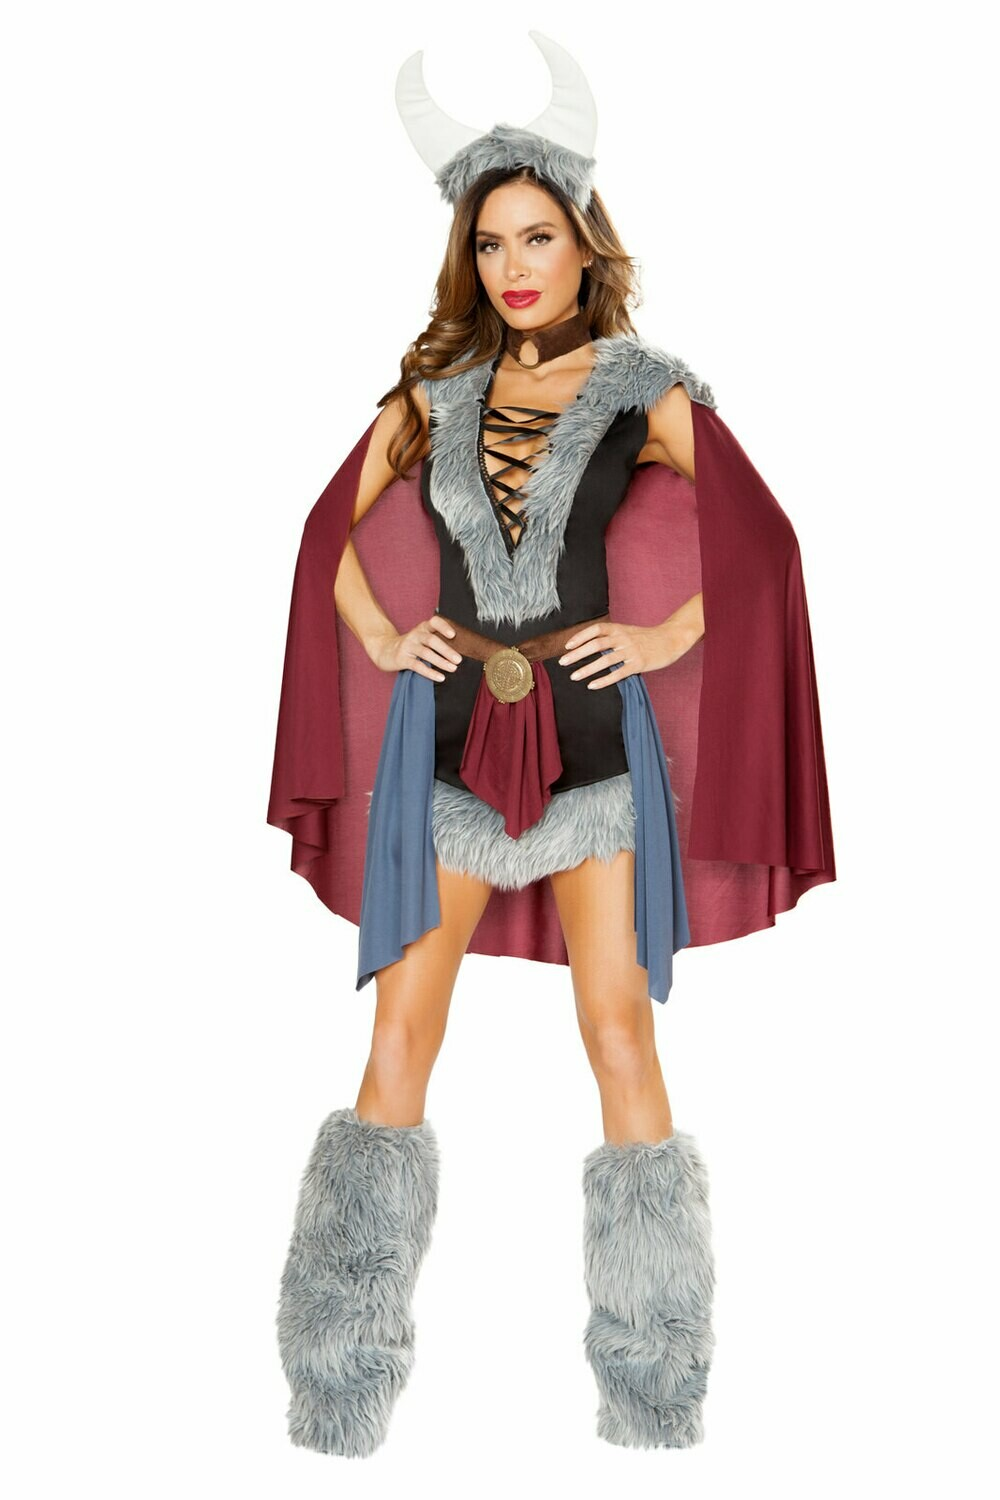 COSTUMES| SUPERHEROS| 5pc ShieldMaiden